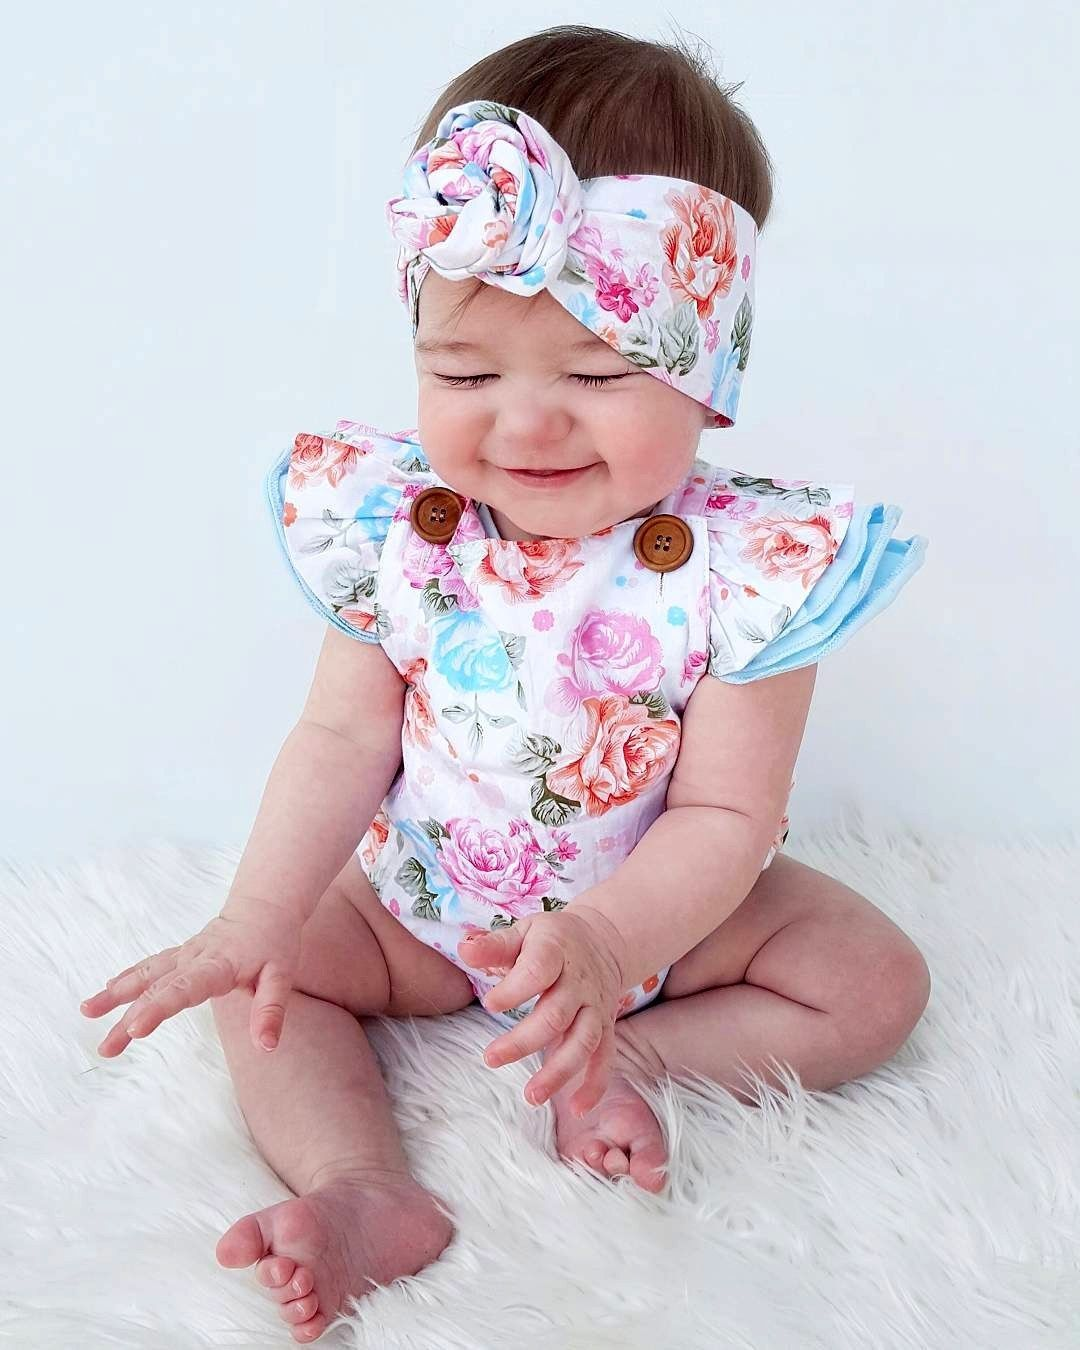 f64def2954b9 2pcs Set Summer Adorable Rompers Baby Girls Floral Romper One pieces  Clothes Sunsuit Set-in Rompers from Mother   Kids on Aliexpress.com